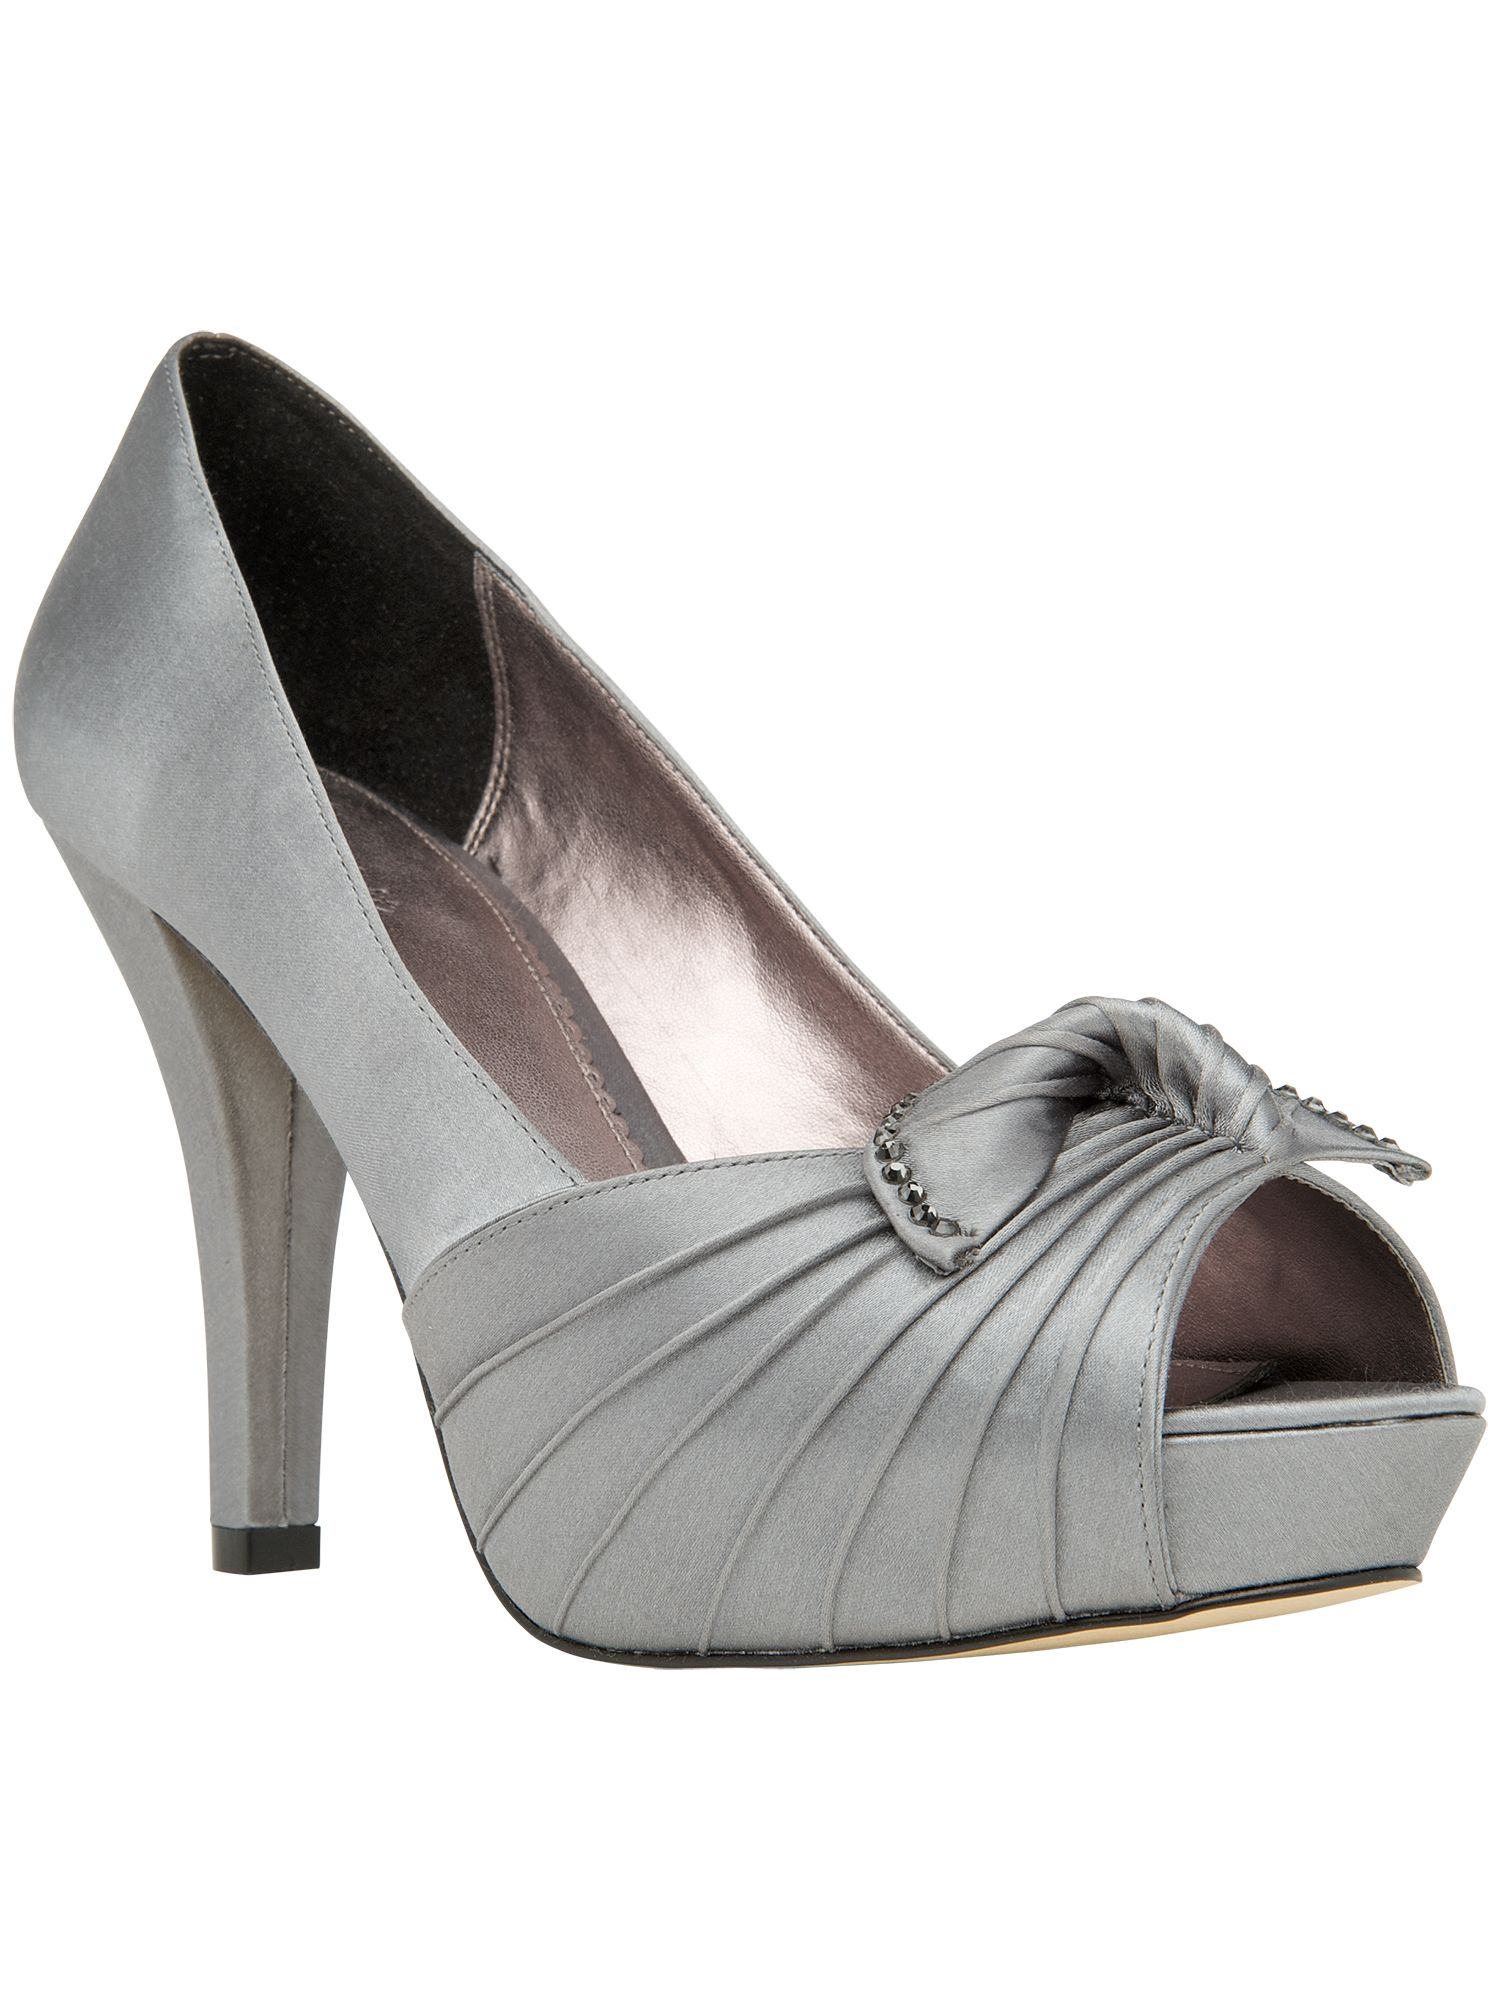 Edie platform peep toe shoes